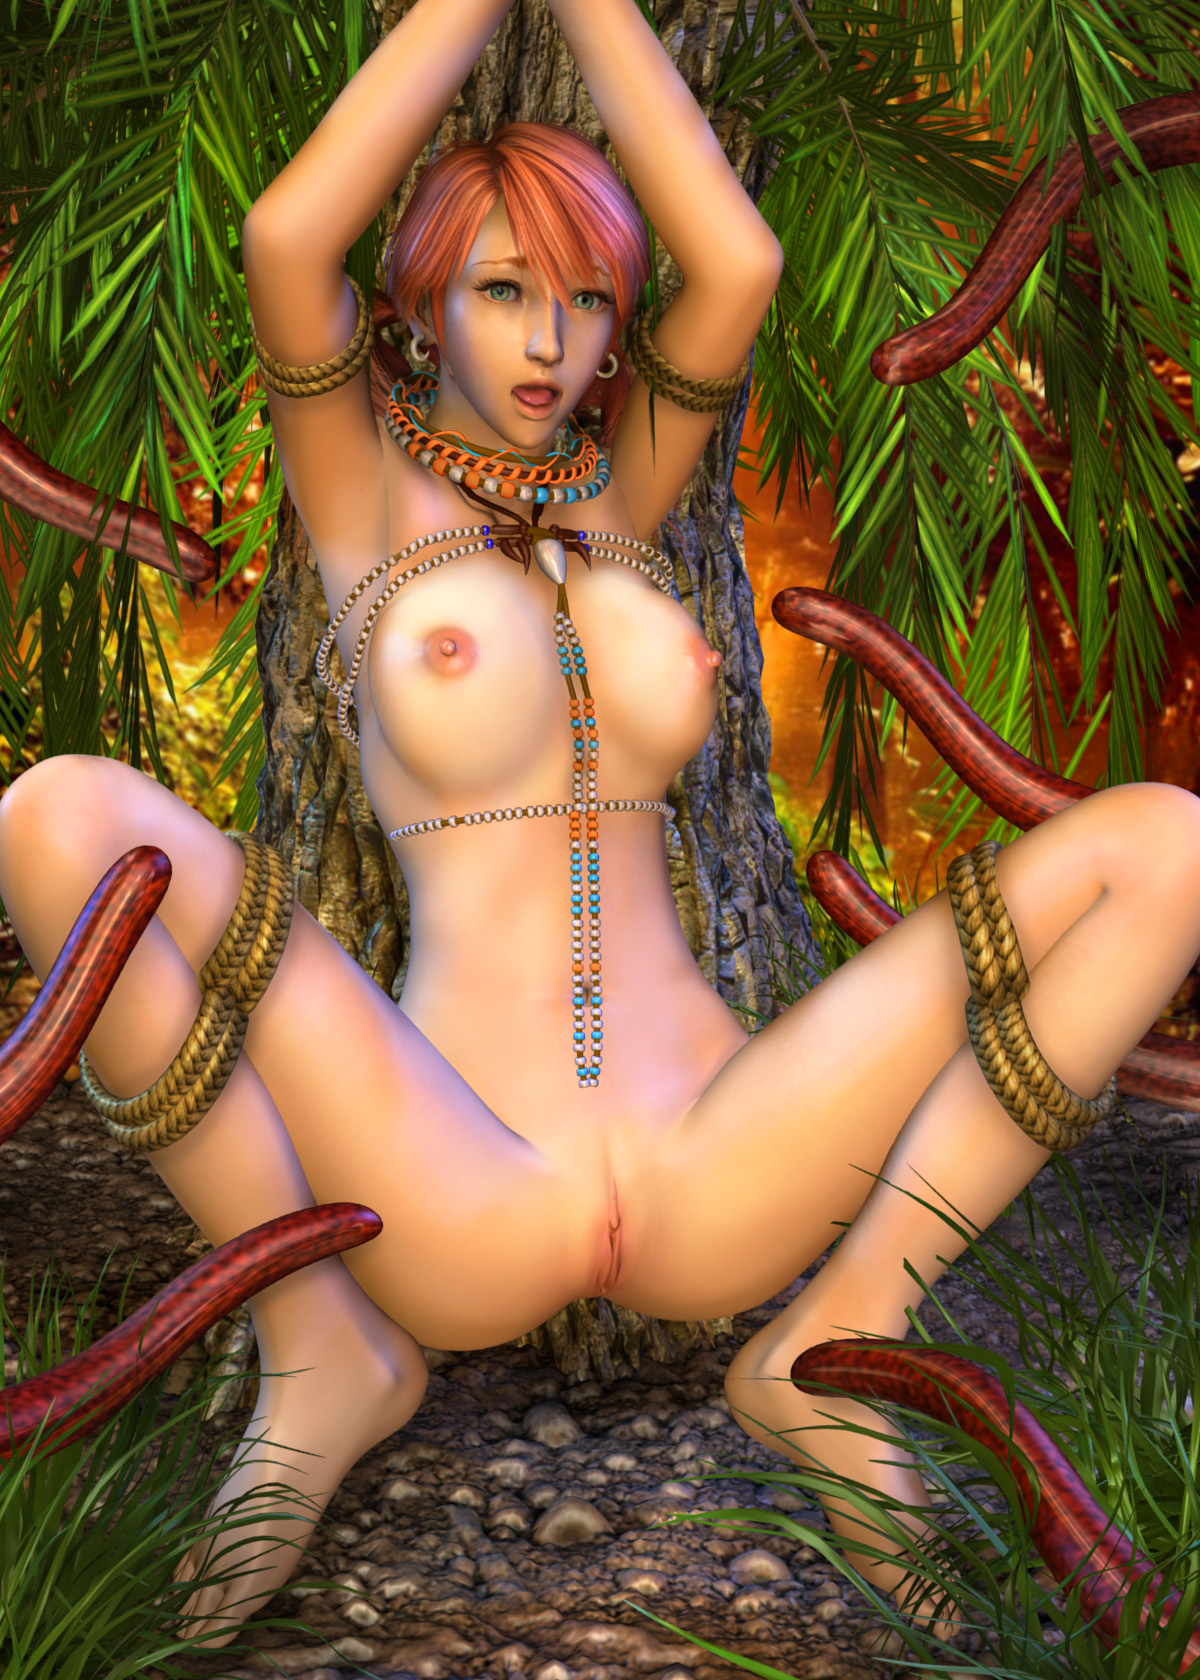 Ff xiii vanille nude erotic photo